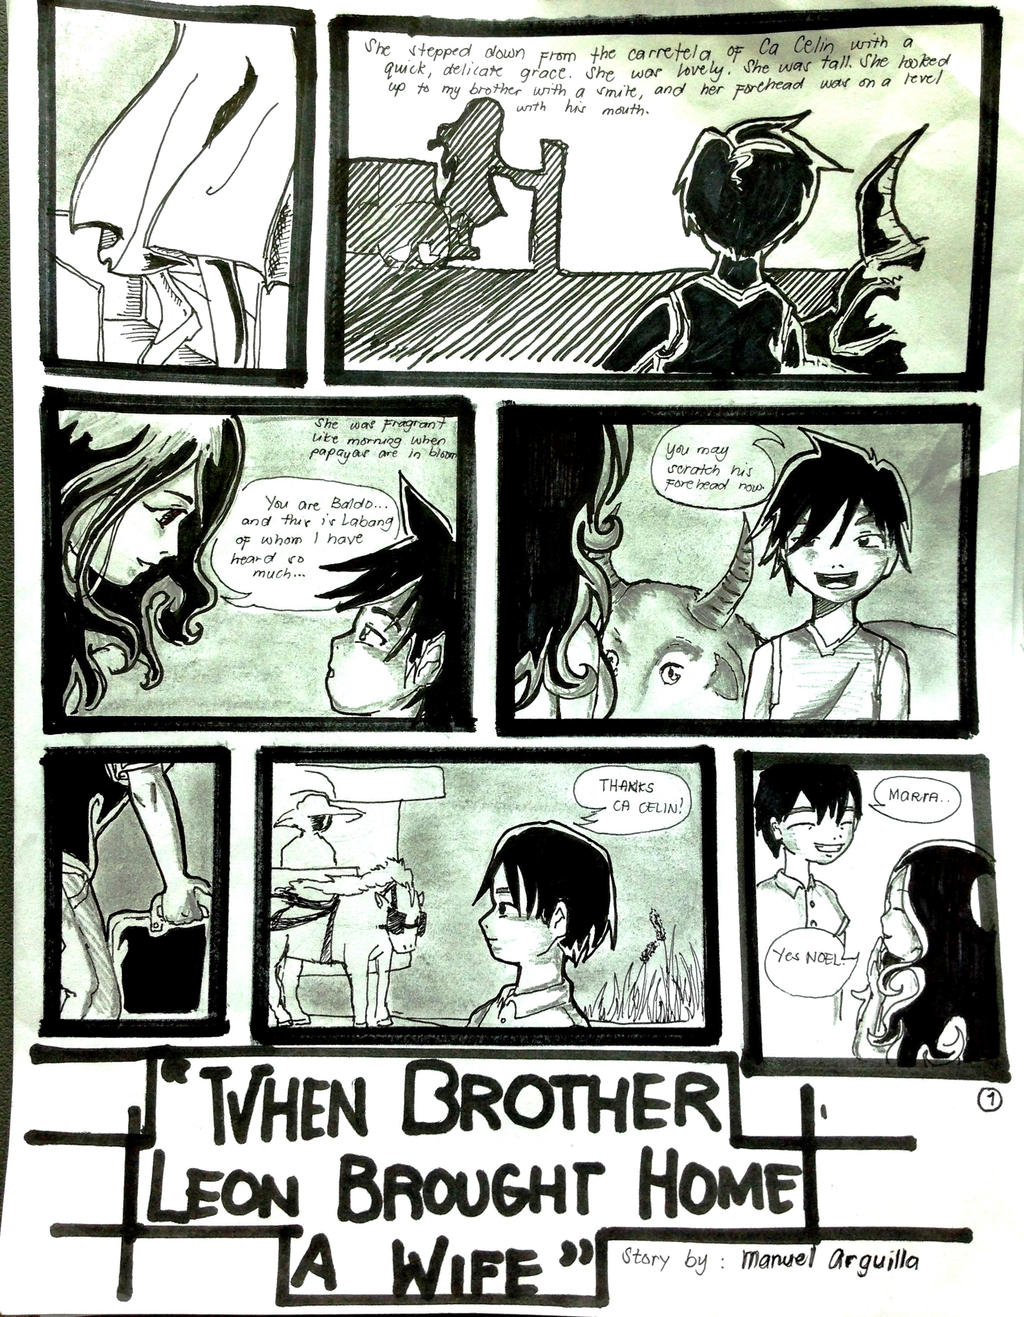 comics strip for how my brother leon How my brother leon brought home a wife (short story) questions including what is the introduction of the story how my brother leon brought home a wife and what.